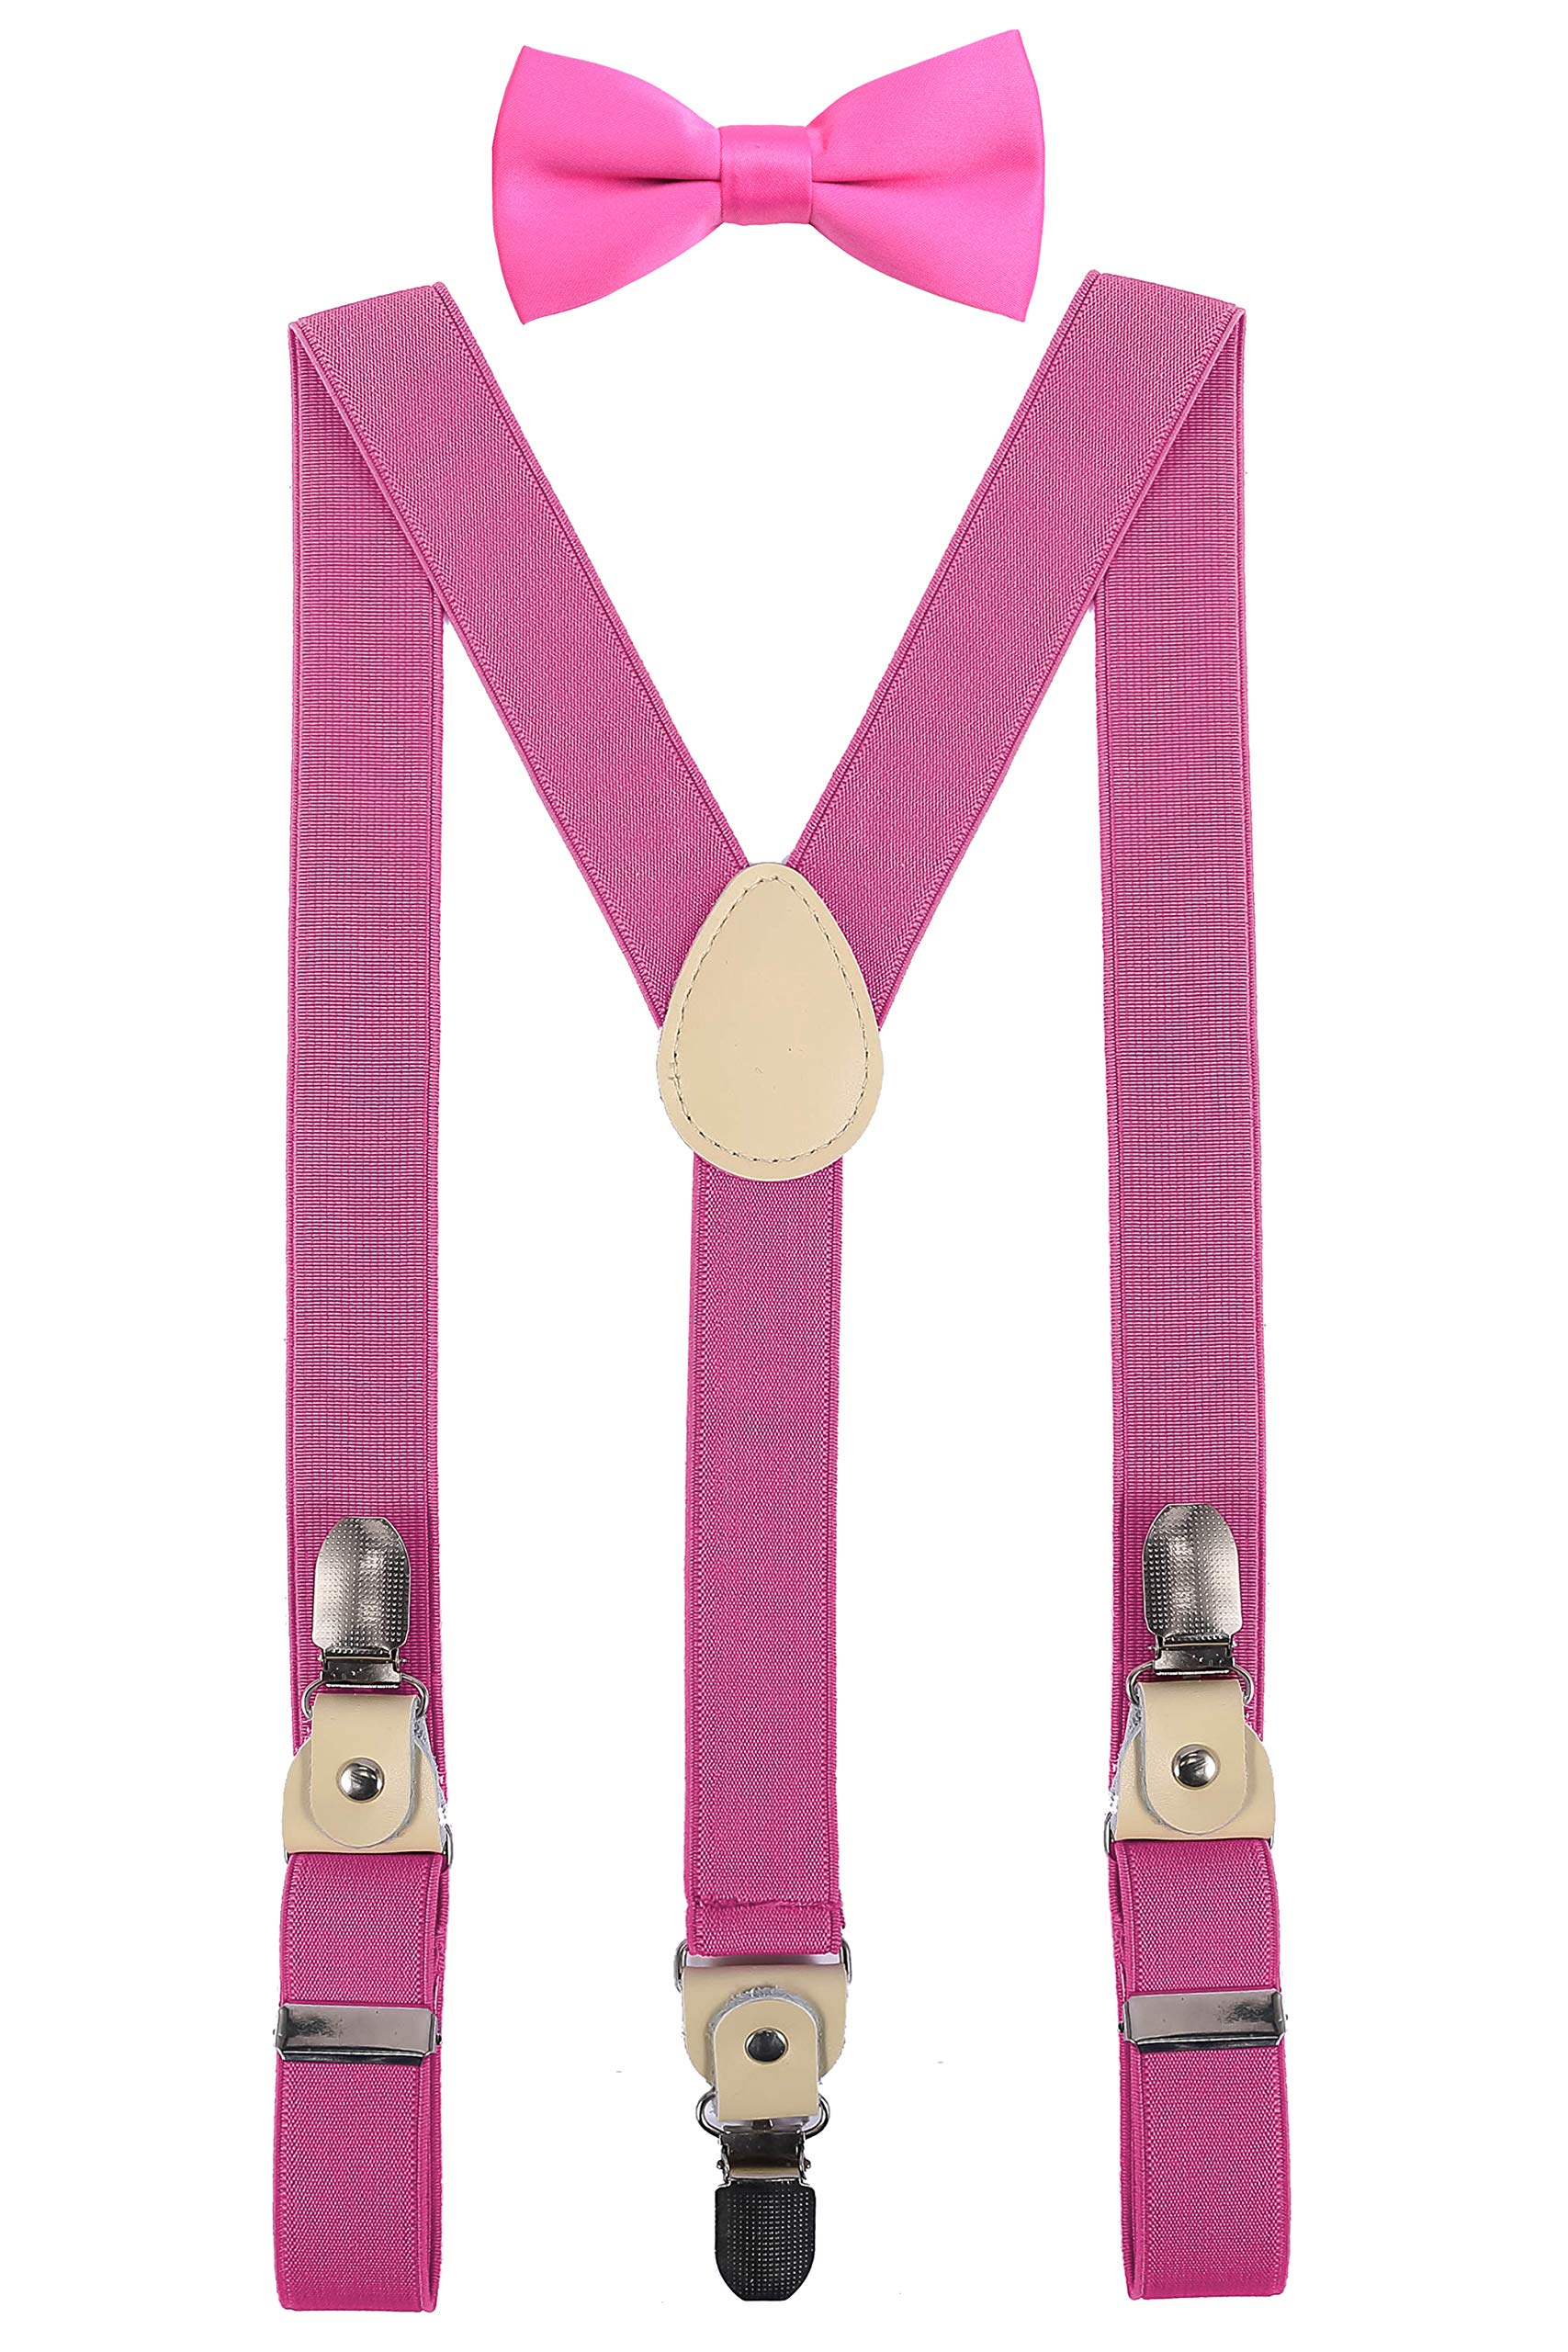 YJDS Kids Leather Suspenders and Bowtie Set Strong Clips Hot Pink 39''